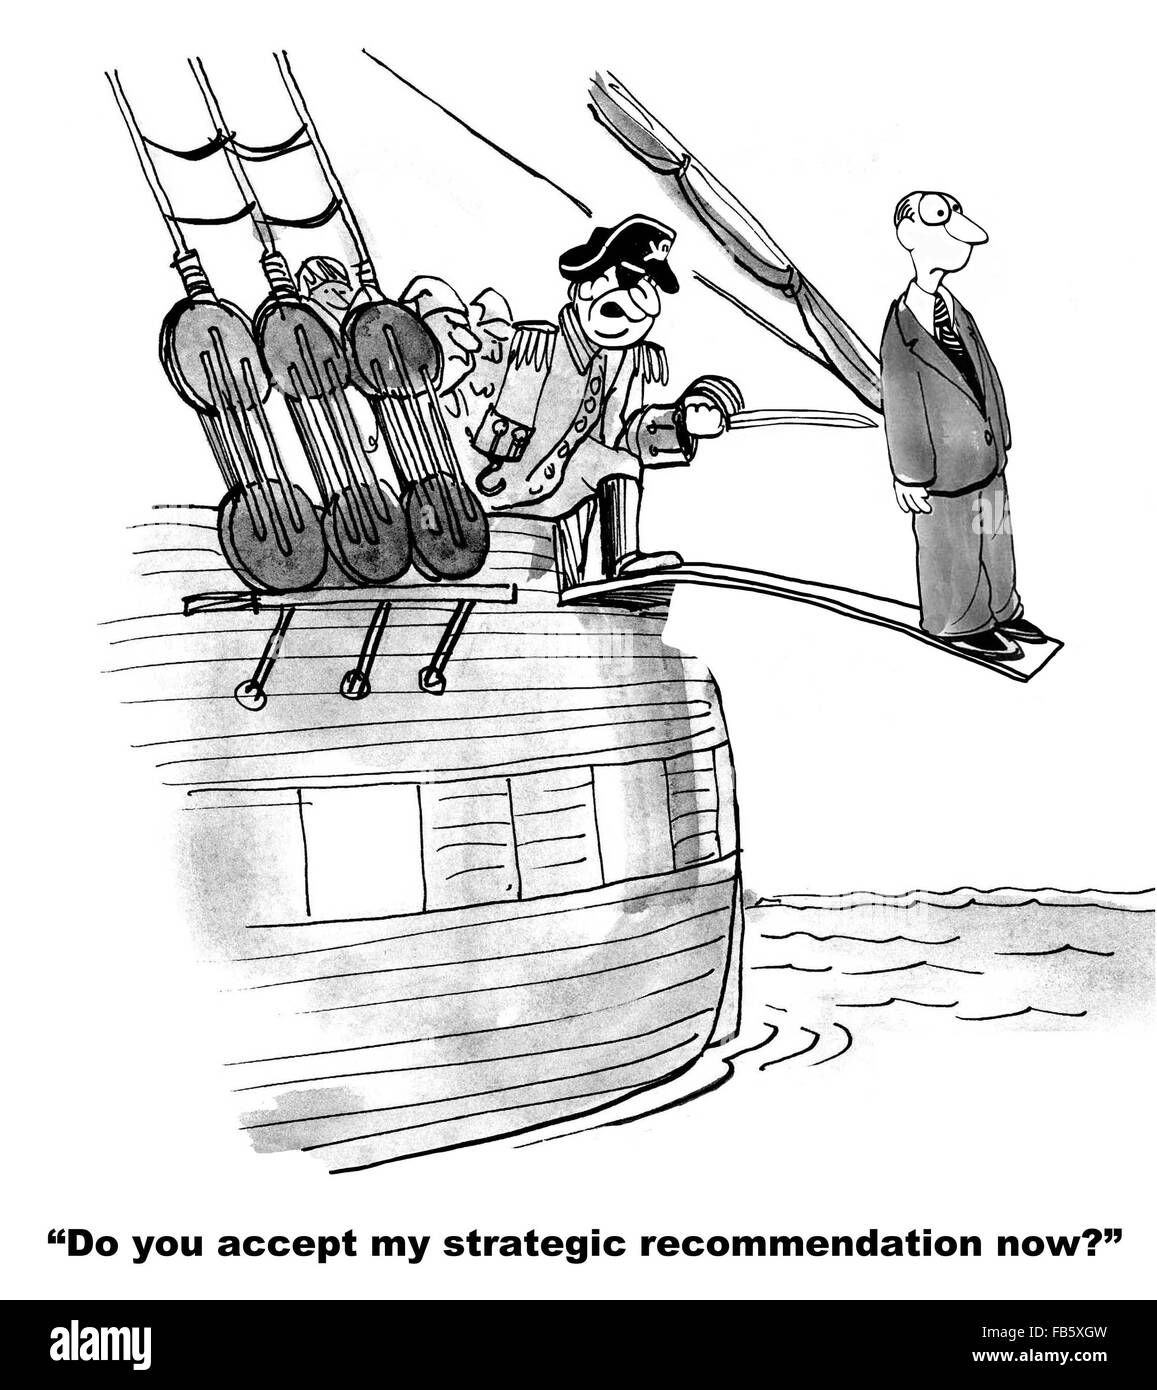 Business cartoon about conflict resolution.  The pirate is making him walk the plank because of his different point - Stock Image